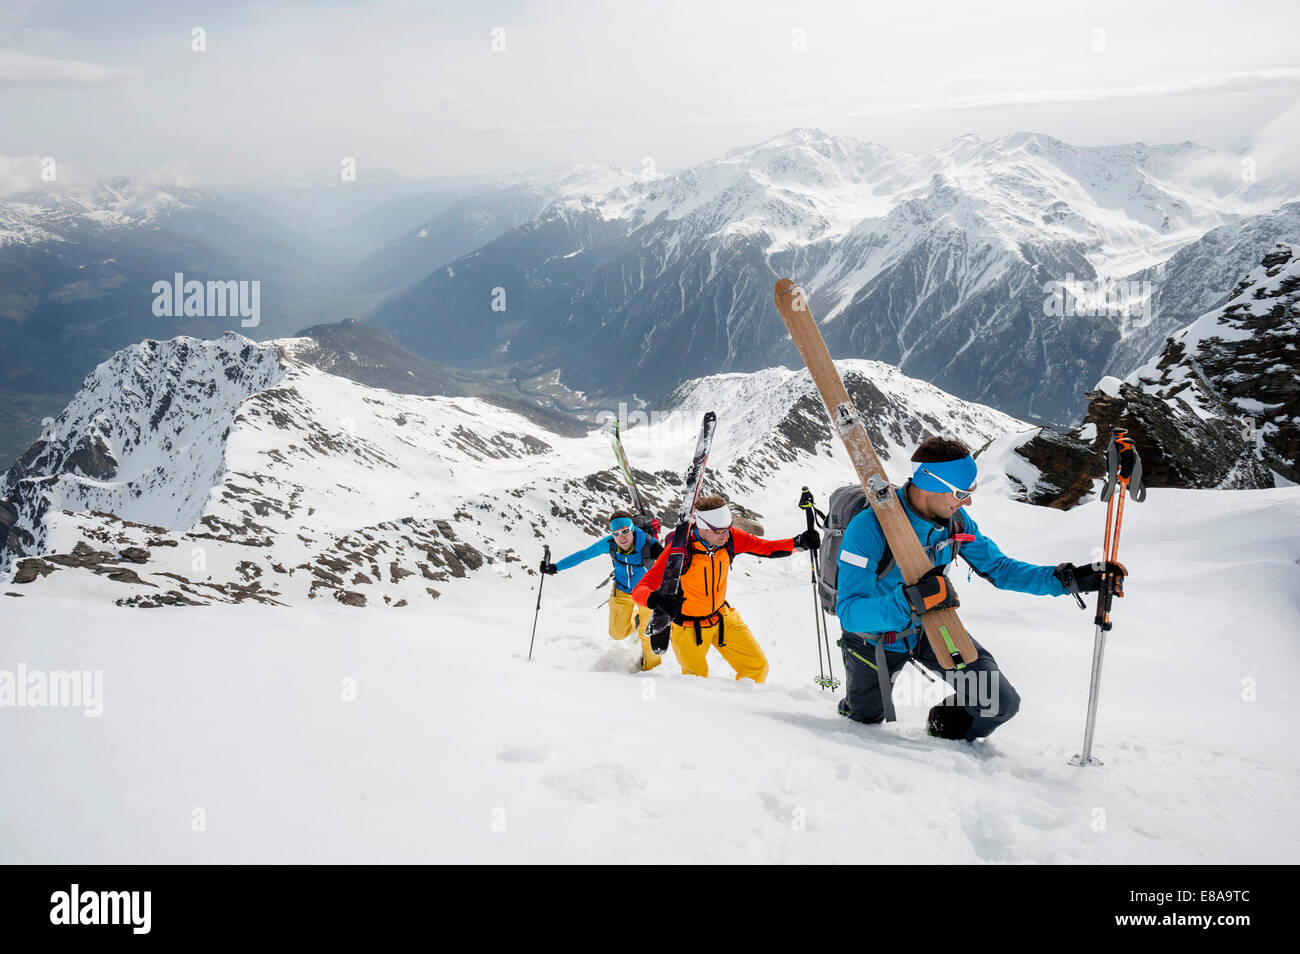 Alps deep snow skiing mountains cross-county - Stock Image